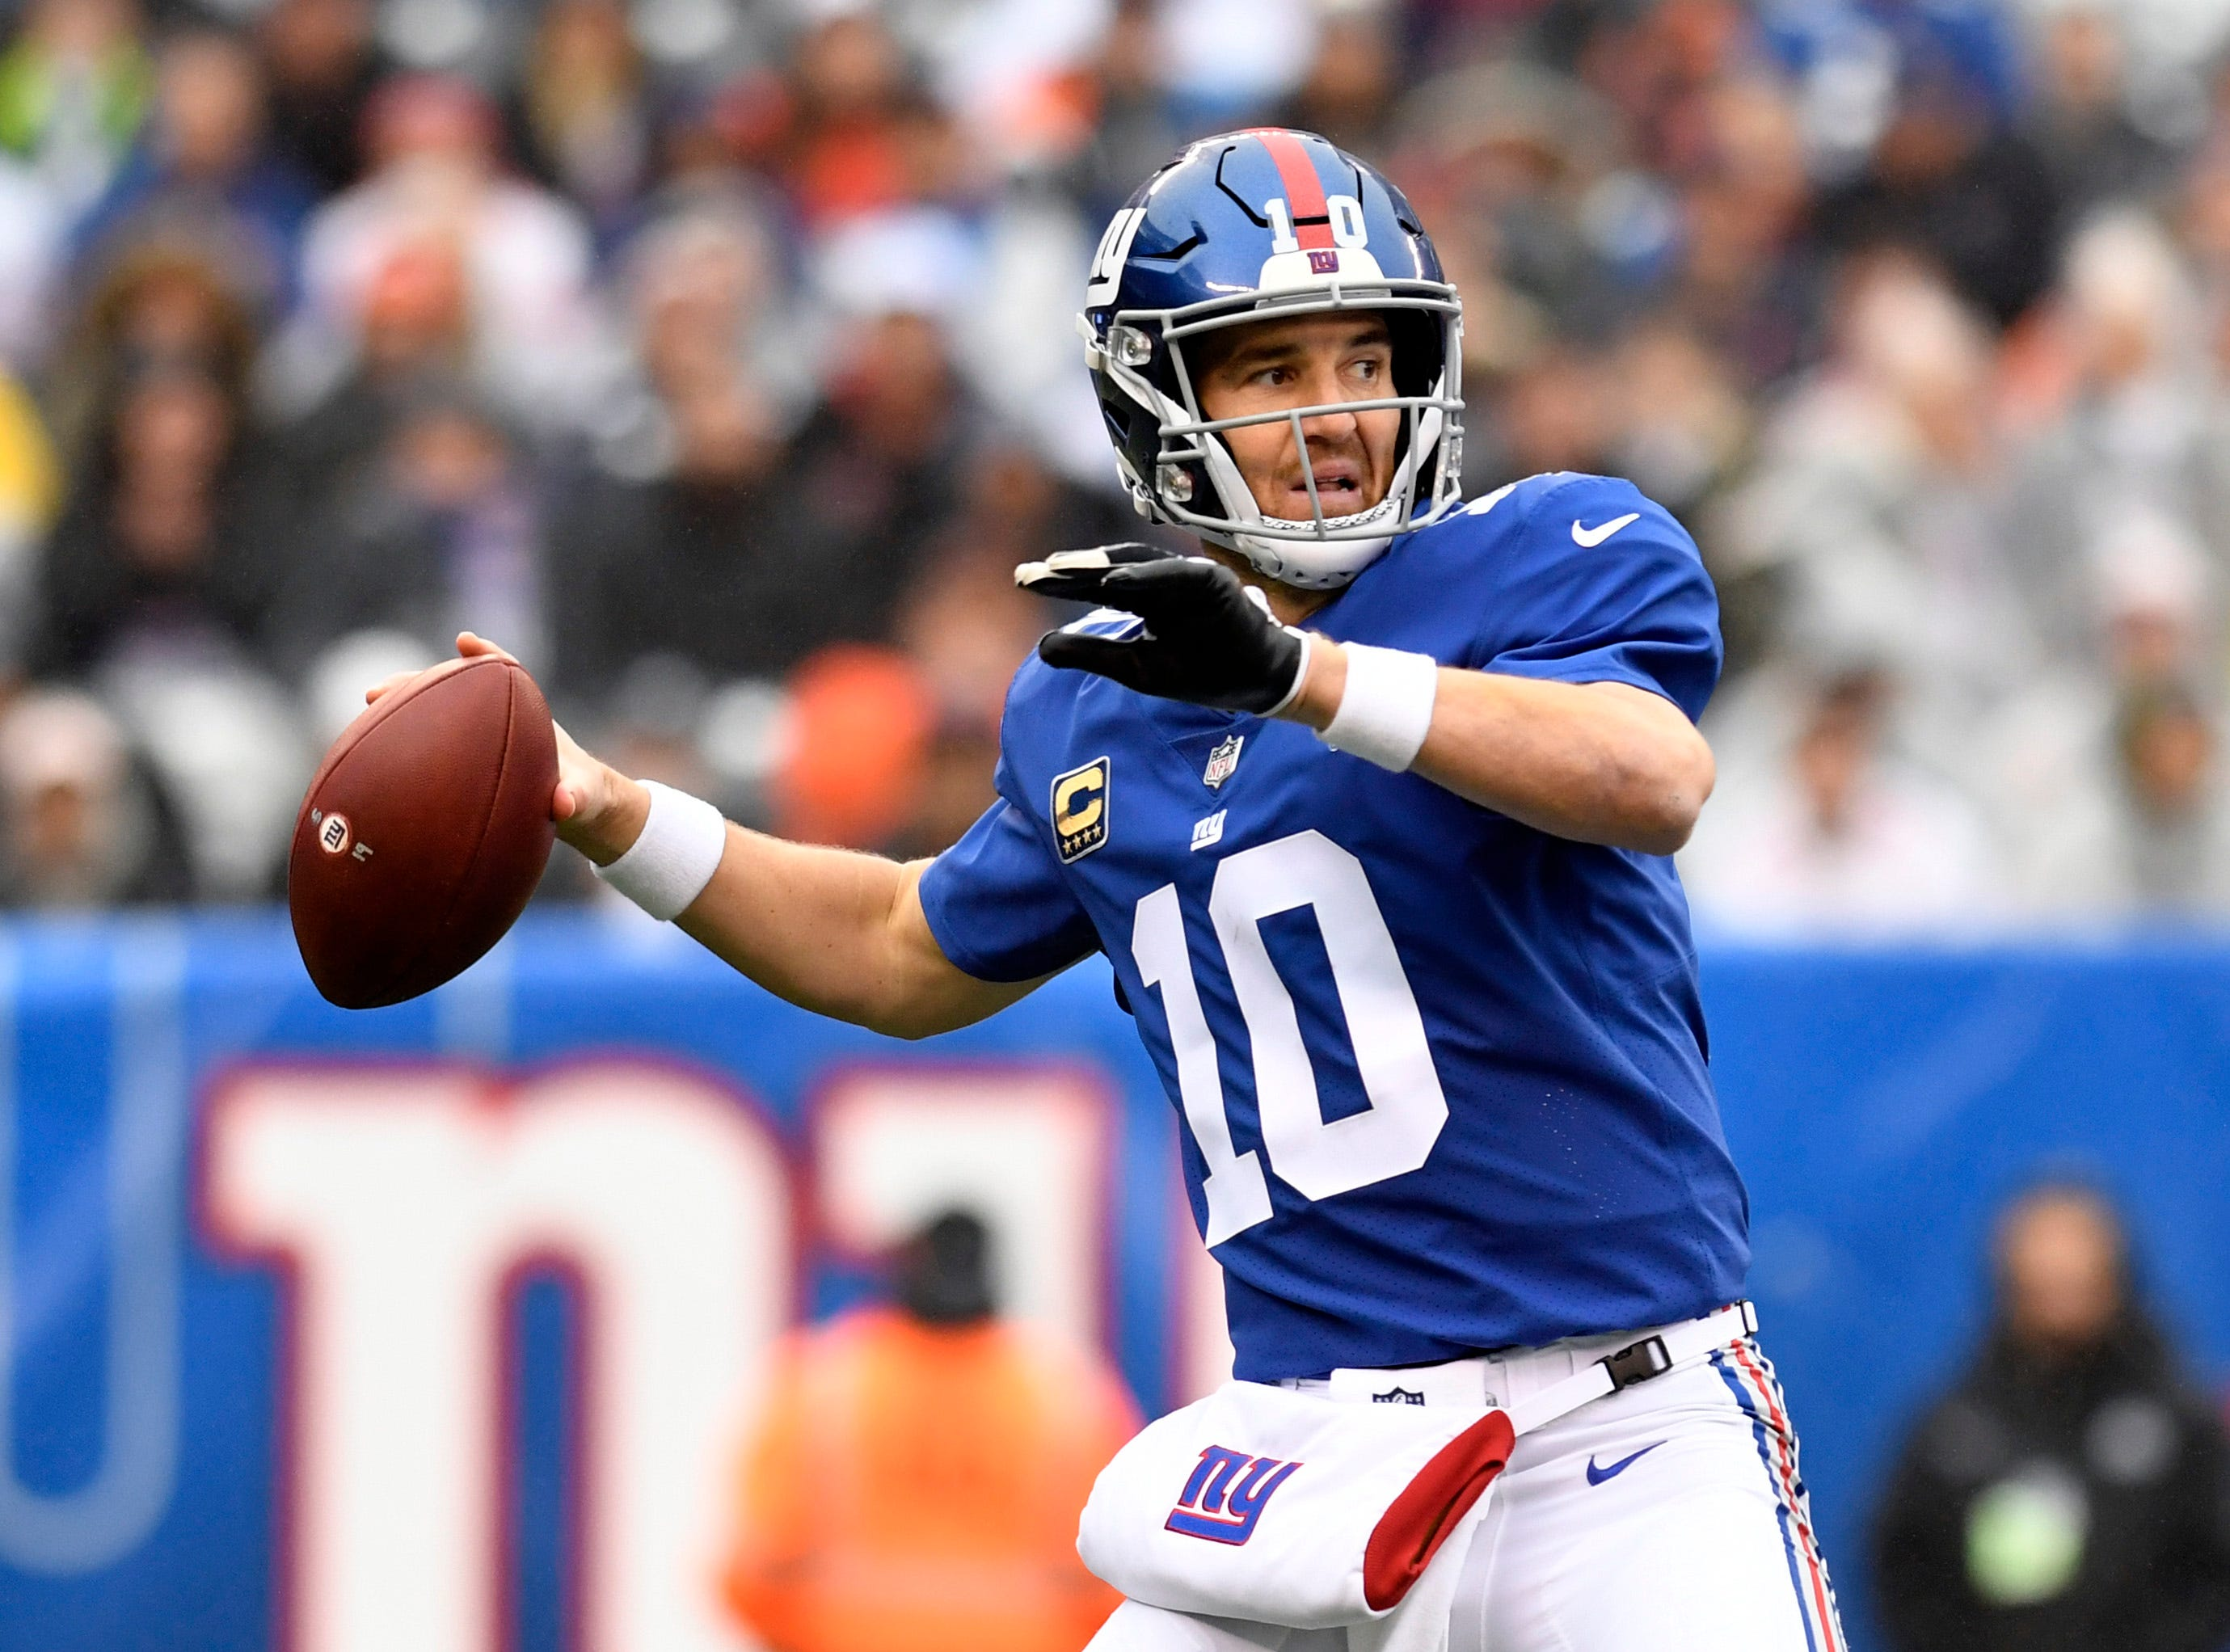 New York Giants quarterback Eli Manning (10) throws against the Chicago Bears in the first half on Sunday, Dec. 2, 2018, in East Rutherford.